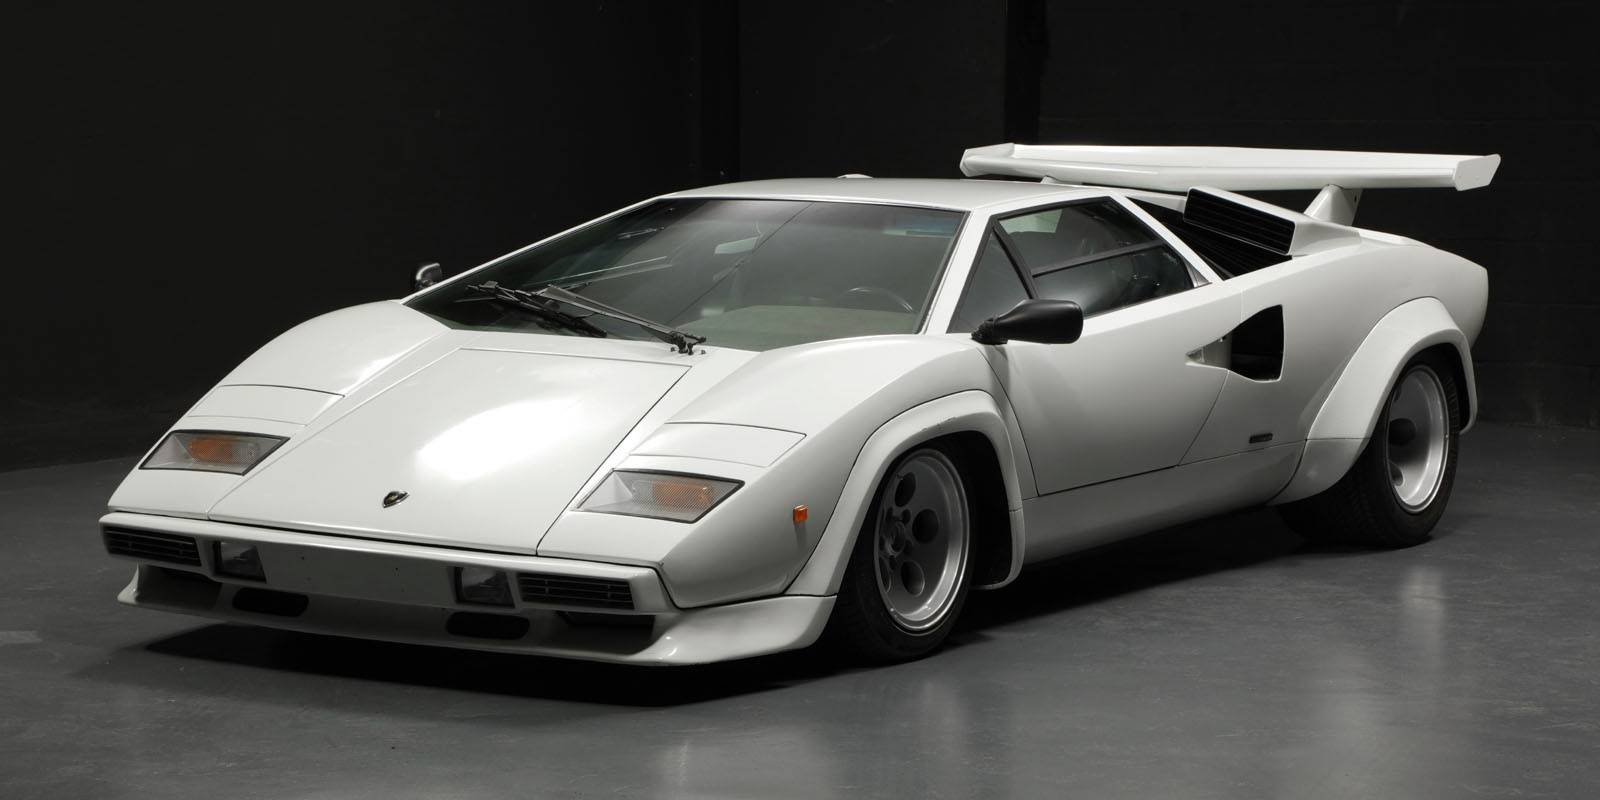 Lamborghini Countach Lp 400 S 1980 For Sale Classic Trader